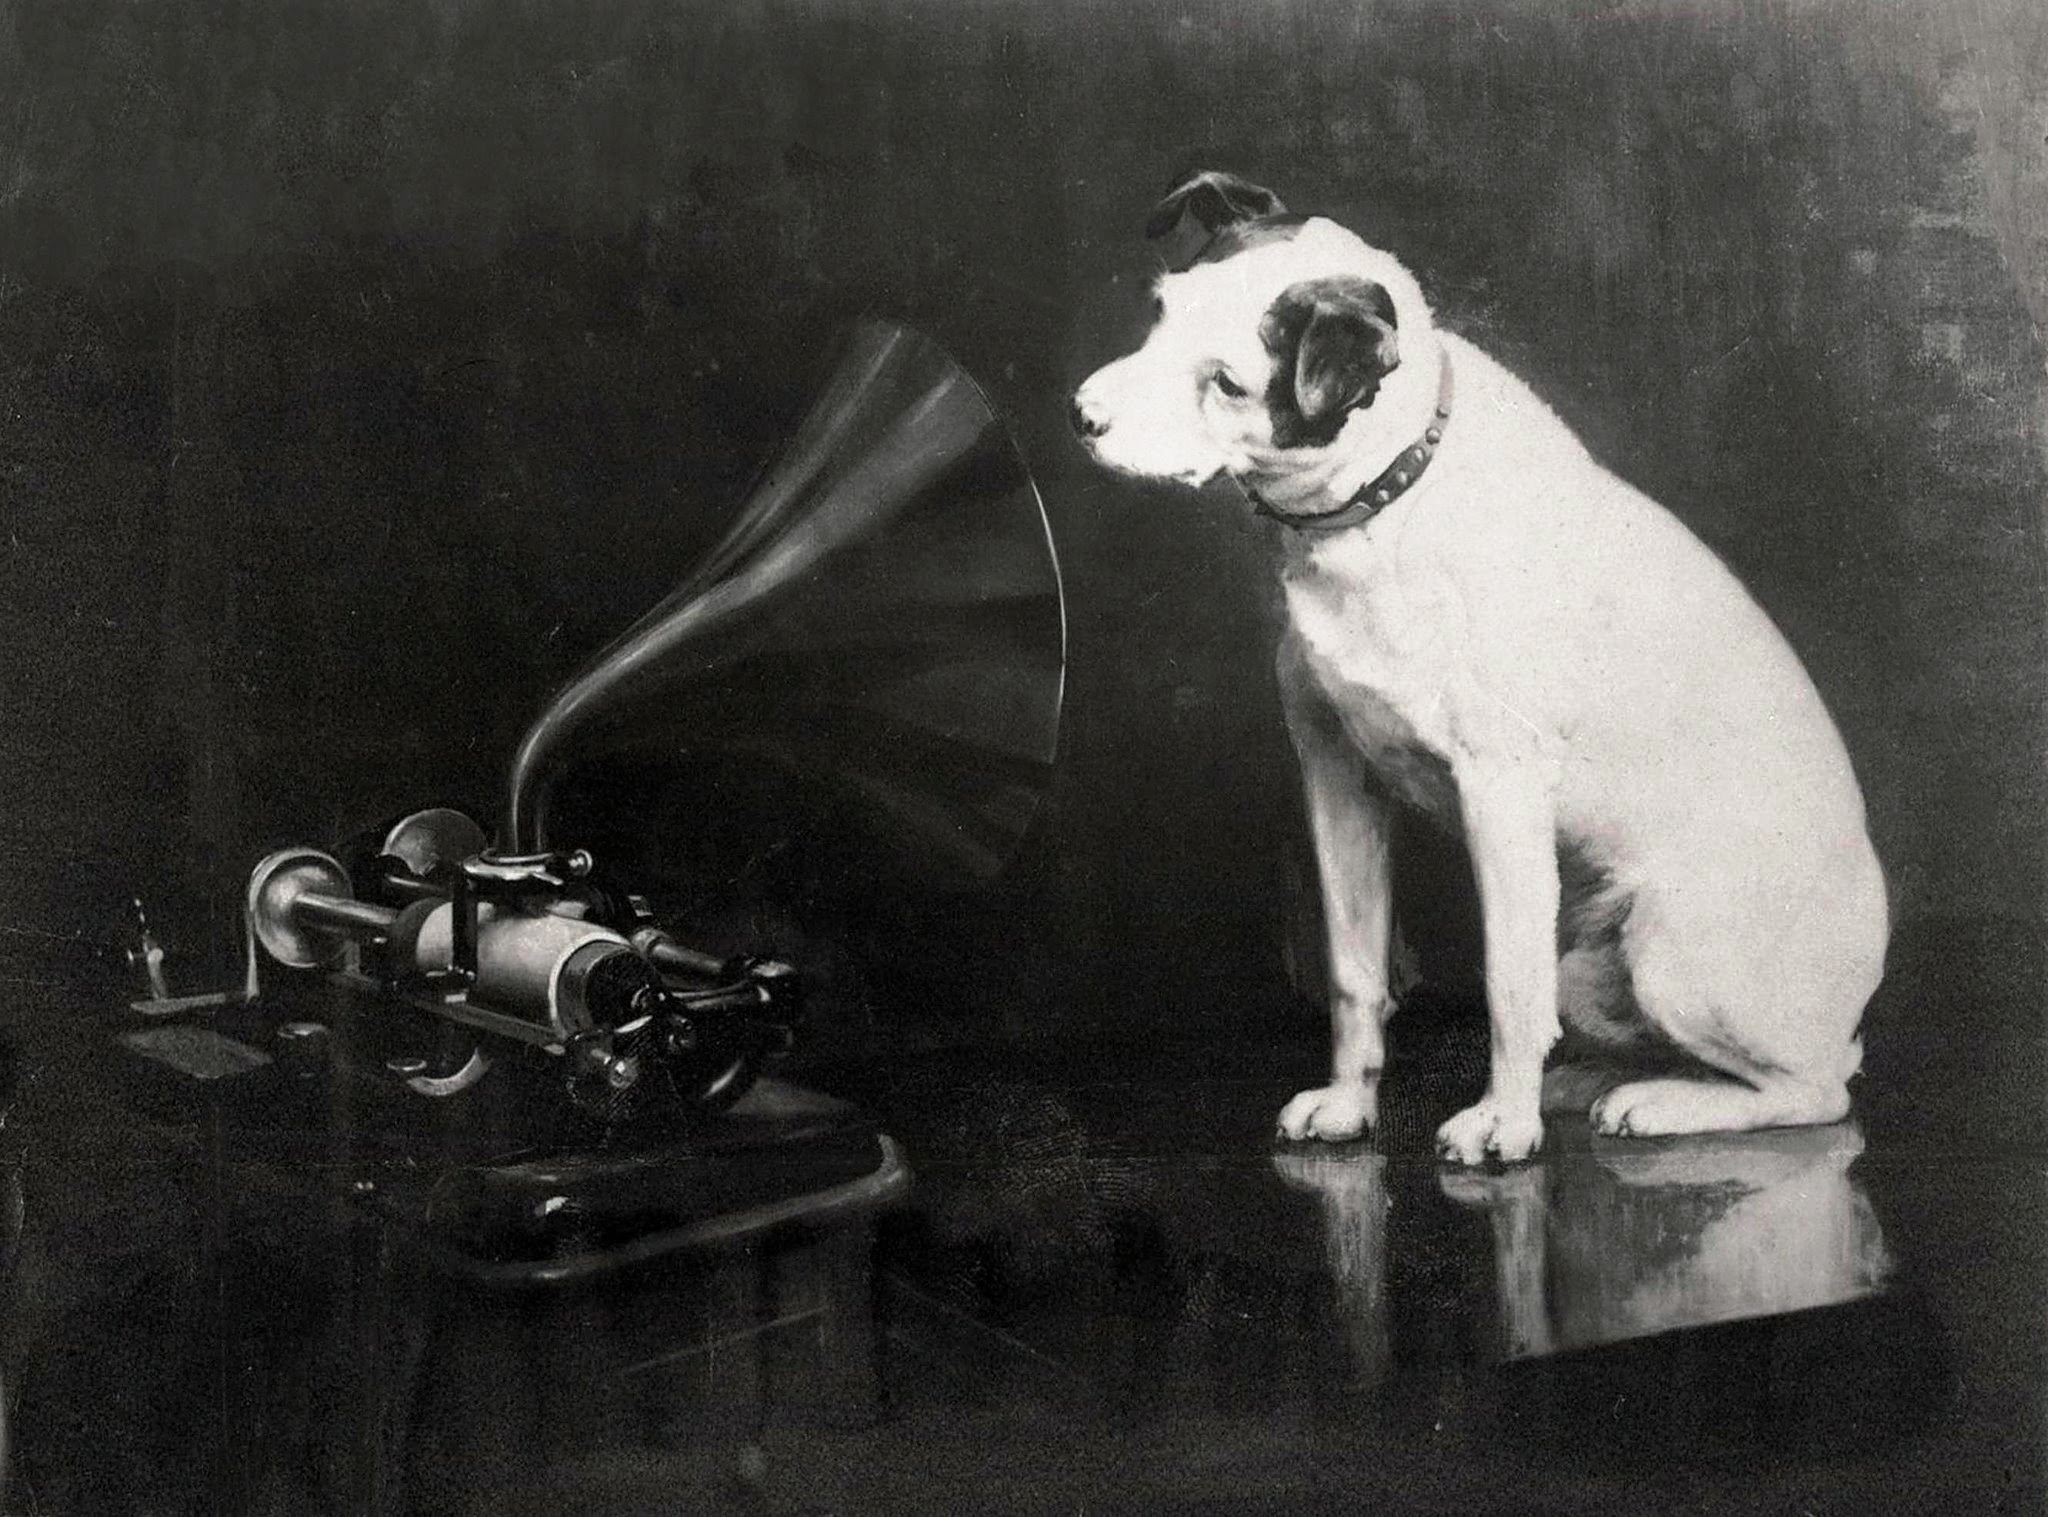 File:OriginalNipper.jpg